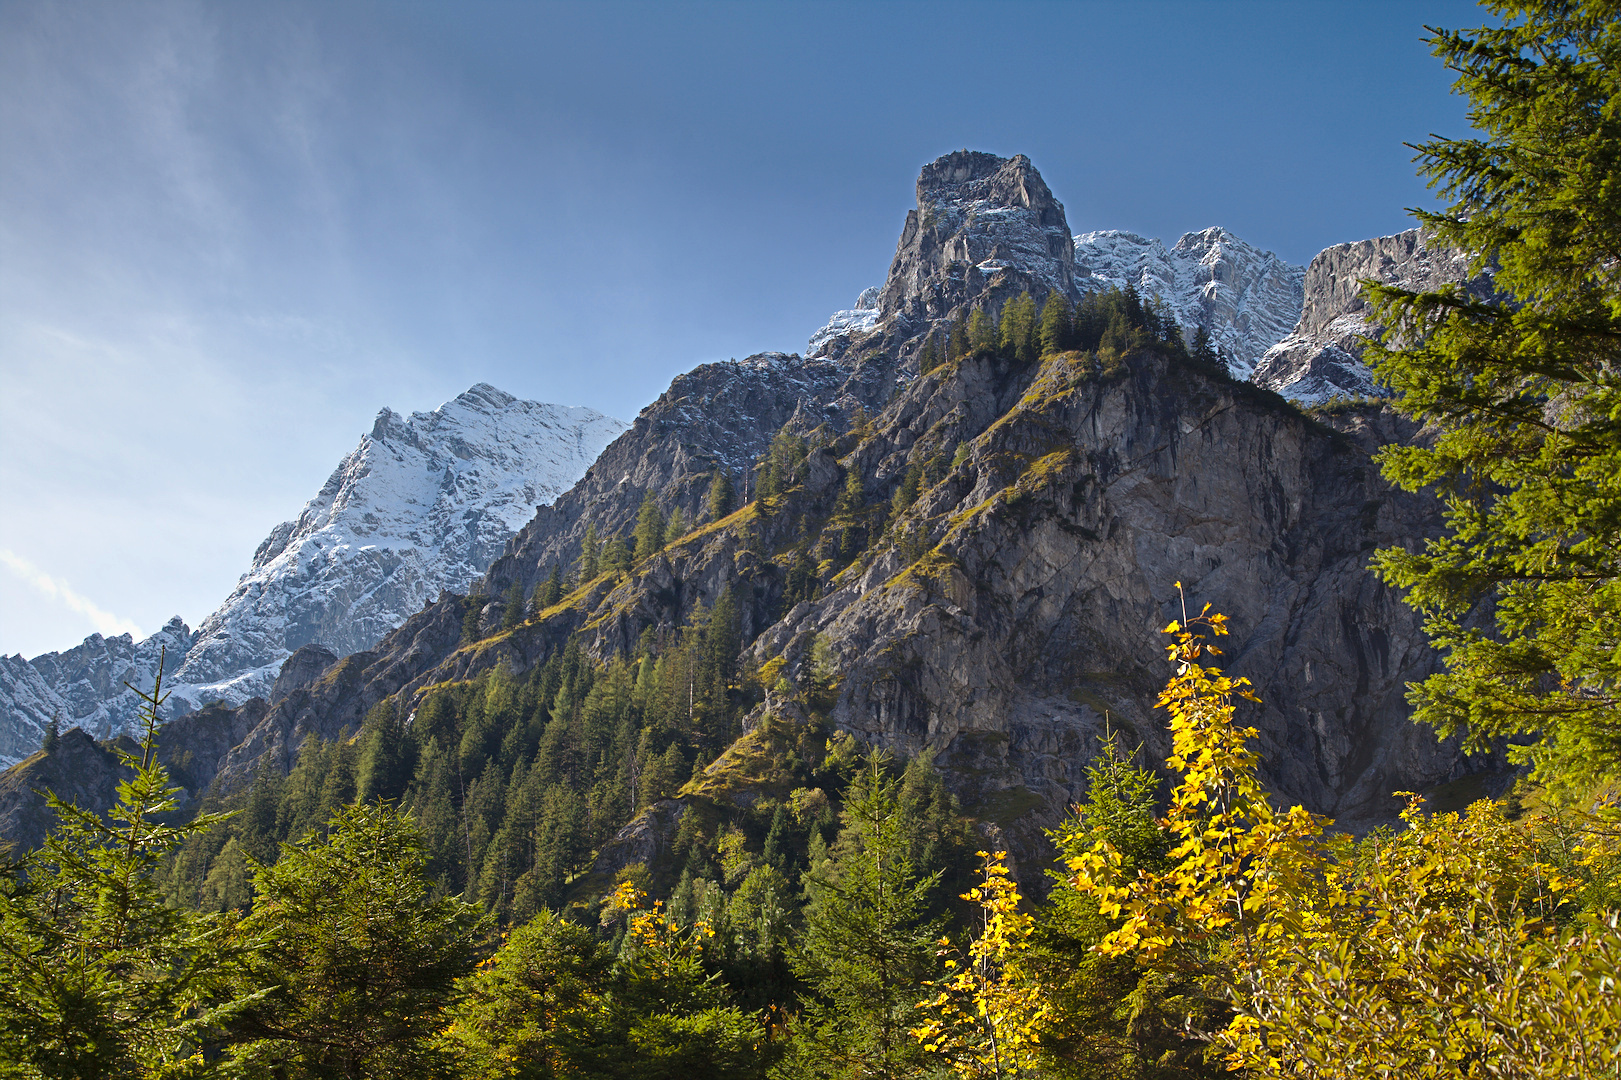 Mountains close to Wimbach valley, Germany